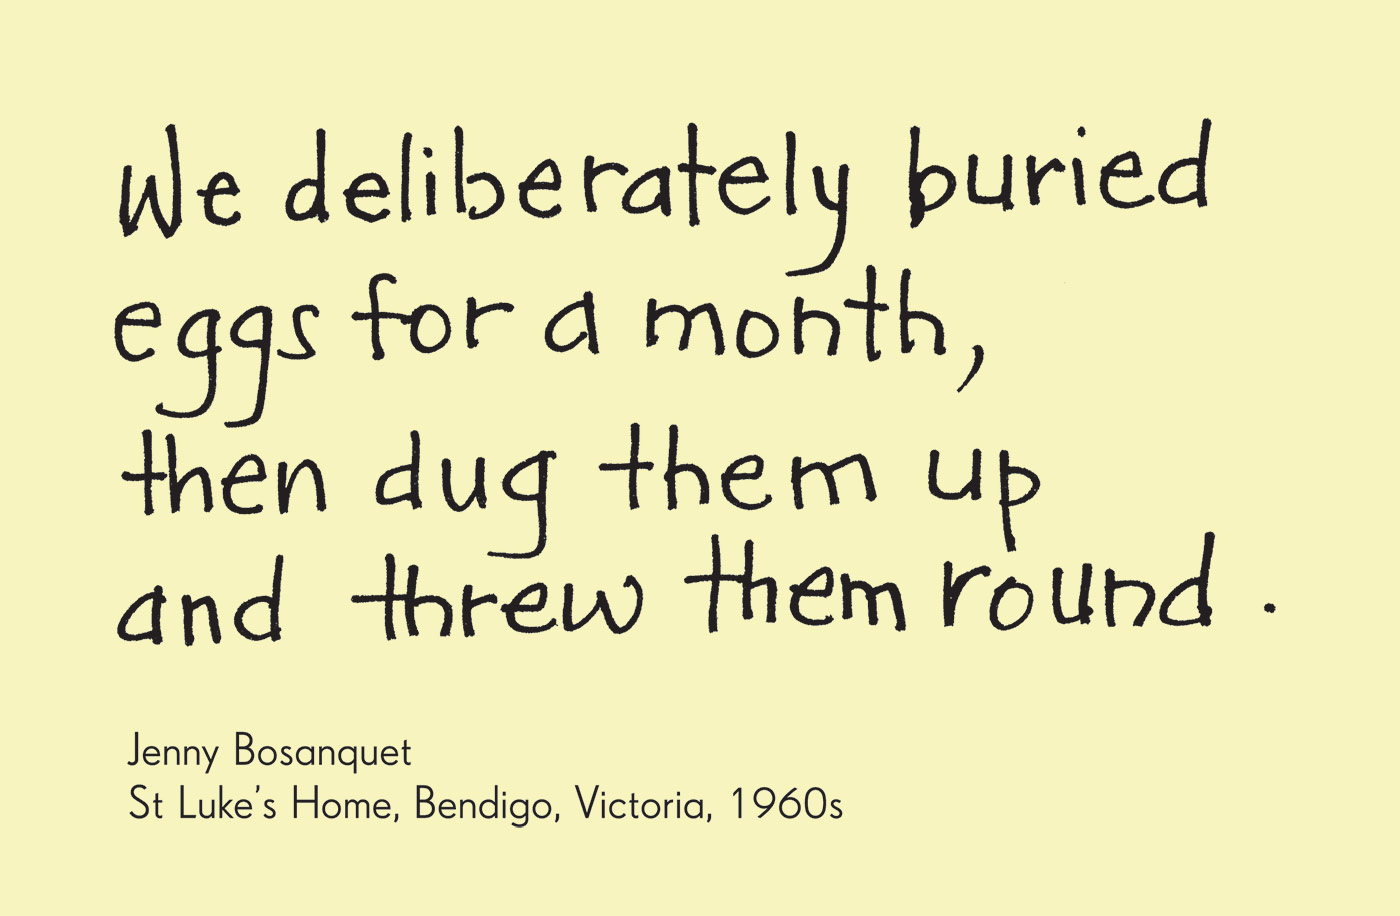 Exhibition graphic panel that reads: 'We deliberately buried eggs for a month, then dug them up and threw them round', attributed to 'Jenny Bosanquet, St Luke's Home, Bendigo, Victoria, 1960s'. - click to view larger image